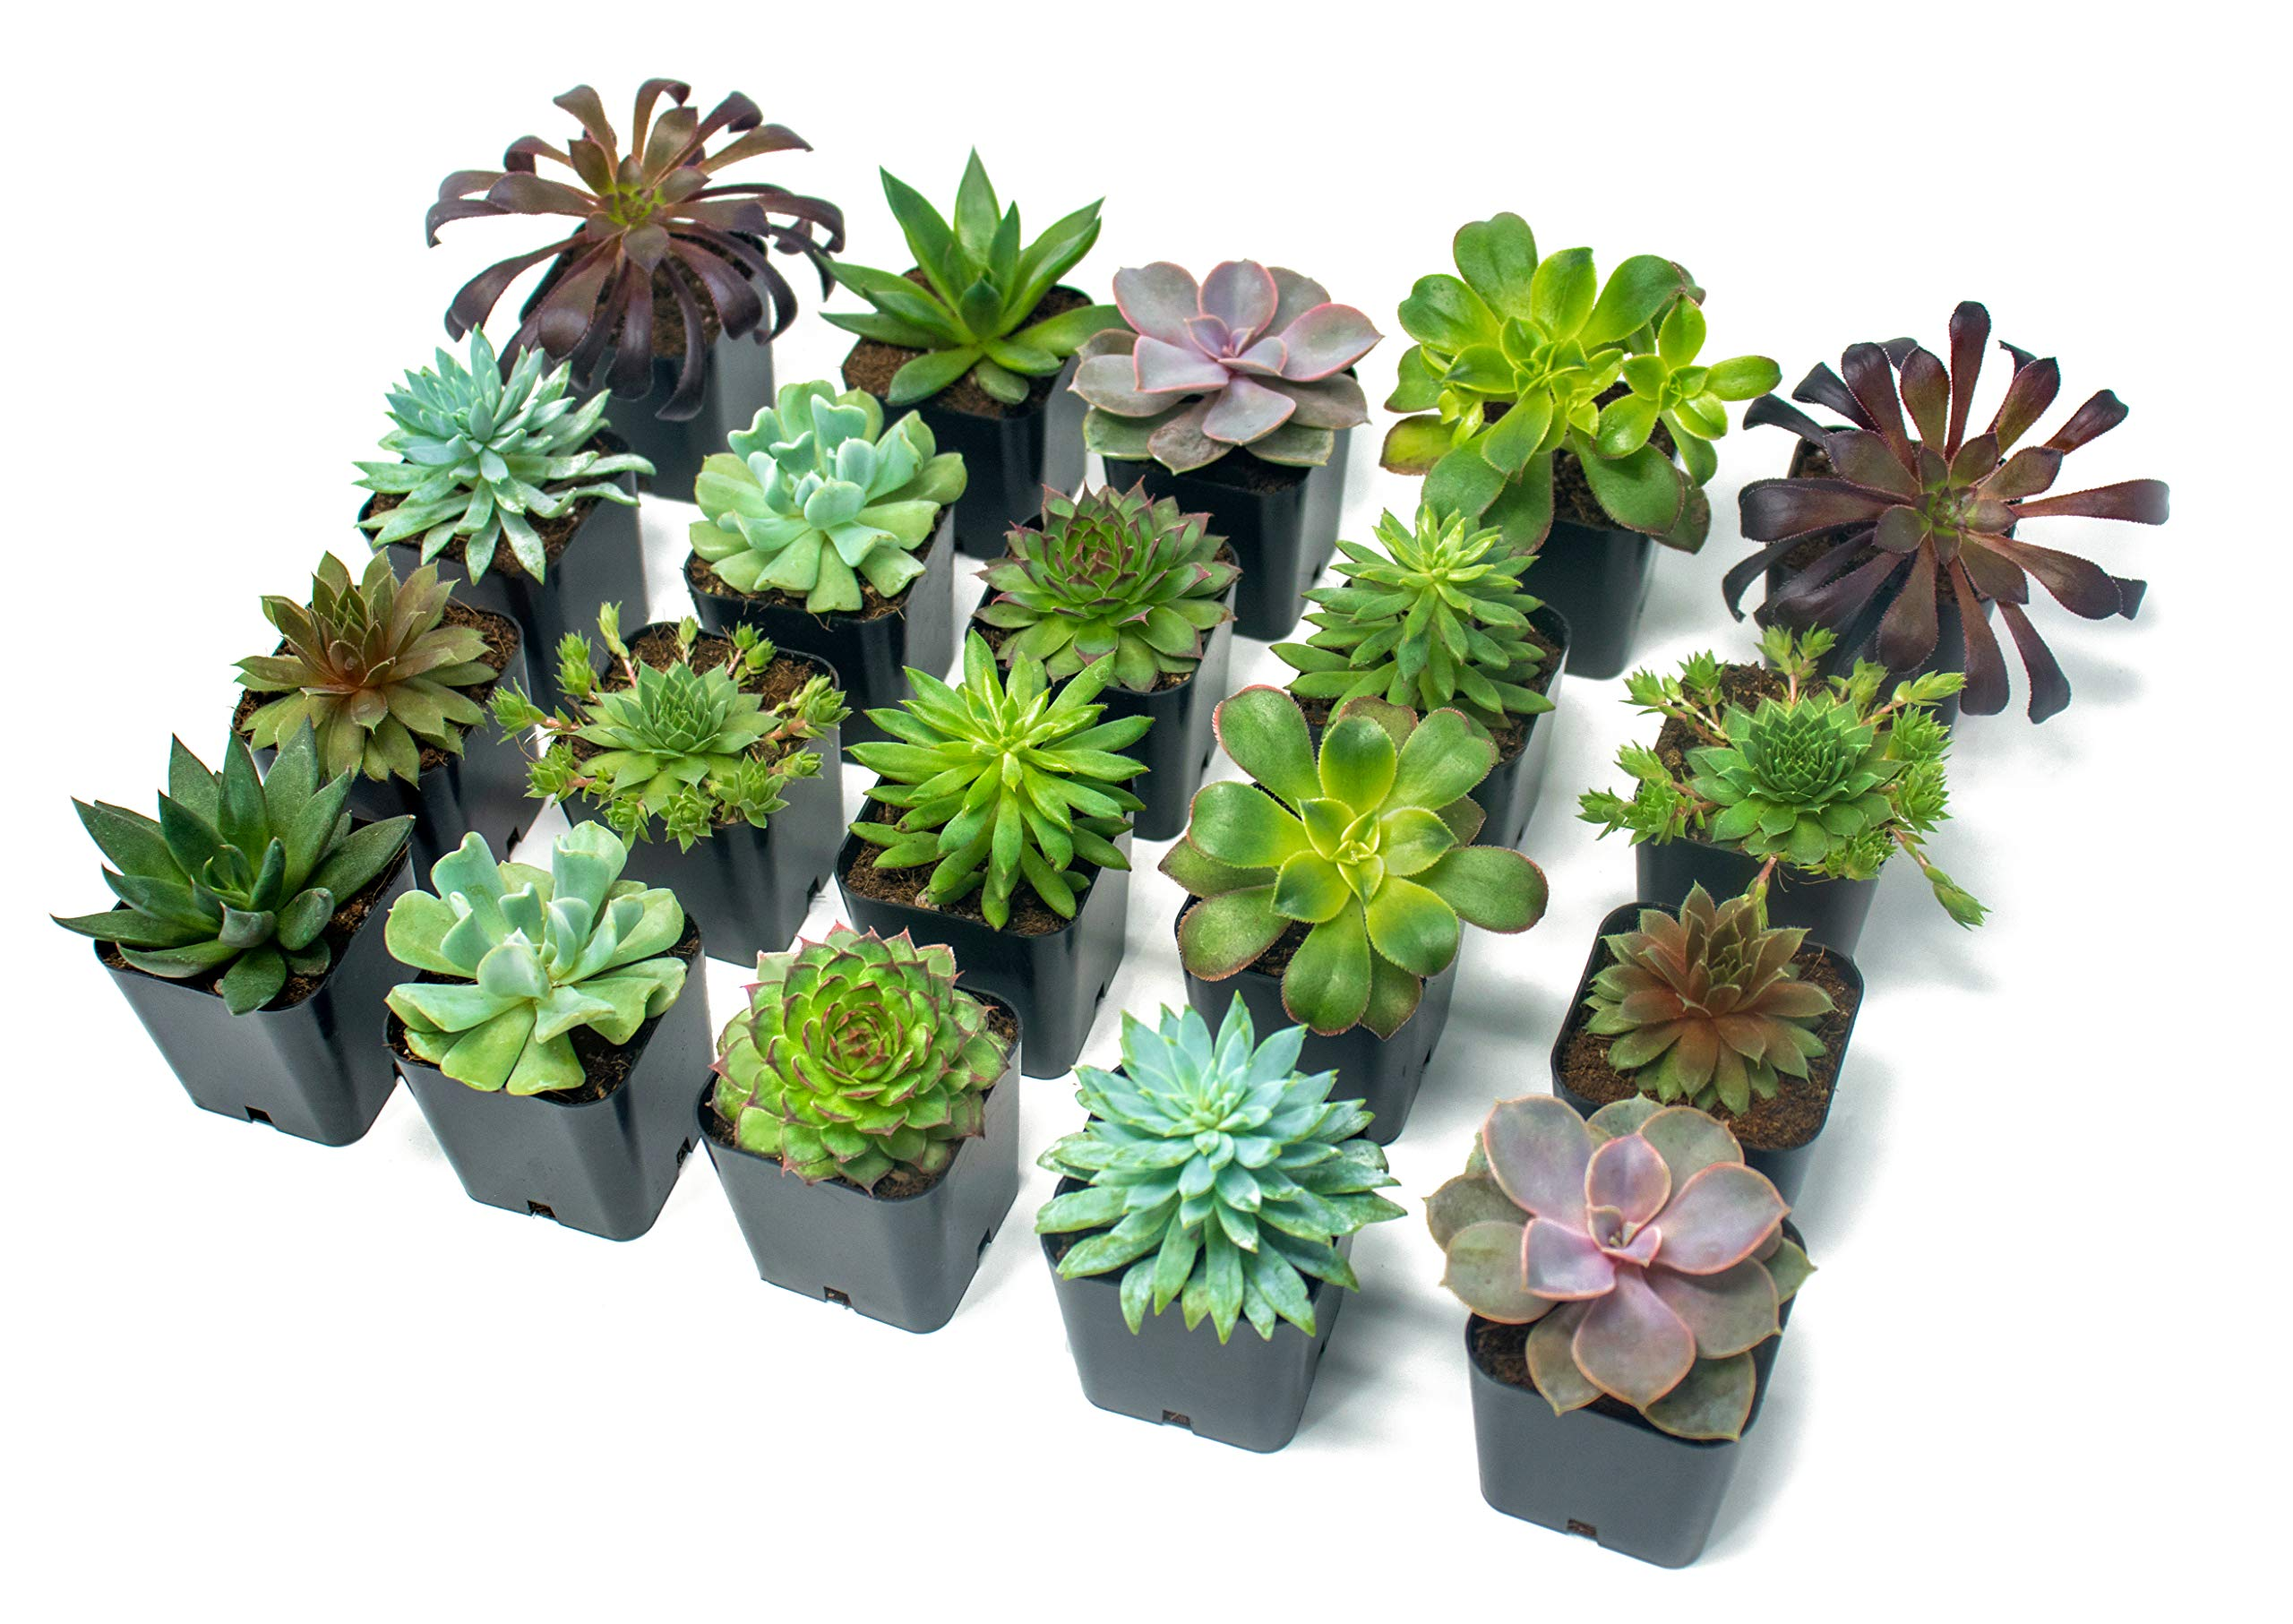 Succulent Plants (20 Pack) Fully Rooted in Planter Pots with Soil | Real Live Potted Succulents / Unique Indoor Cactus Decor by Plants for Pets 1 HAND SELECTED: Every pack of succulents we send is hand-picked. You will receive a unique collection of species that are fully rooted and similar to the product photos. Note that we rotate our nursery stock often, so the exact species we send changes every week. THE EASIEST HOUSE PLANTS: More appealing than artificial plastic or fake faux plants, and care is a cinch. If you think you can't keep houseplants alive, you're wrong; our succulents don't require fertilizer and can be planted in a decorative pot of your choice within seconds. DIY HOME DECOR: The possibilities are only limited by your imagination; display them in a plant holder, a wall mount, a geometric glass vase, or even in a live wreath. Because of their amazingly low care requirements, they can even make the perfect desk centerpiece for your office.